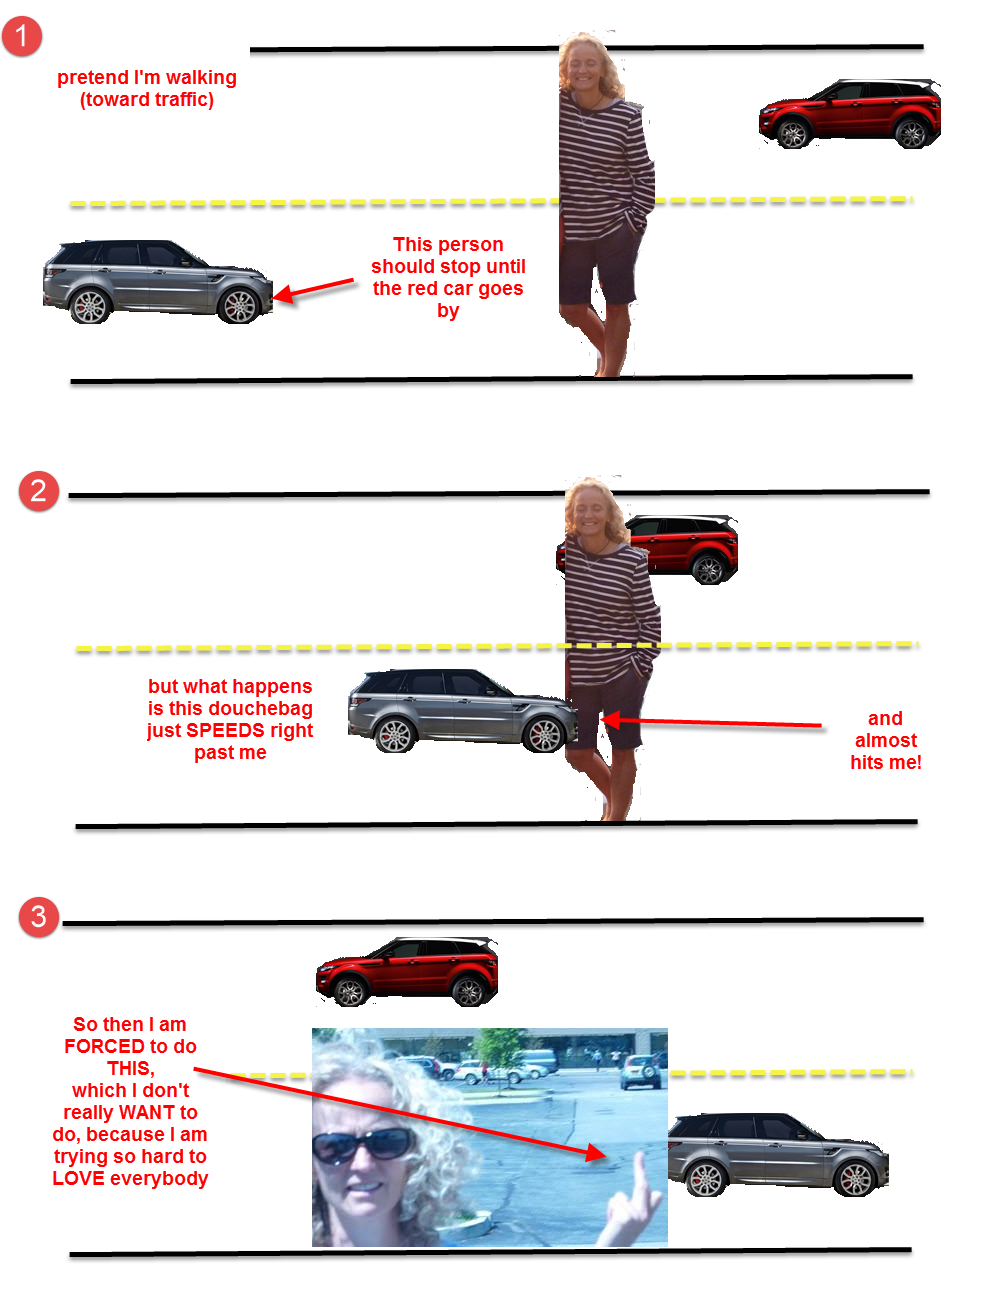 Sorry about the yellow line going over my body in Step 2. I was reliving the act of ALMOST DYING.